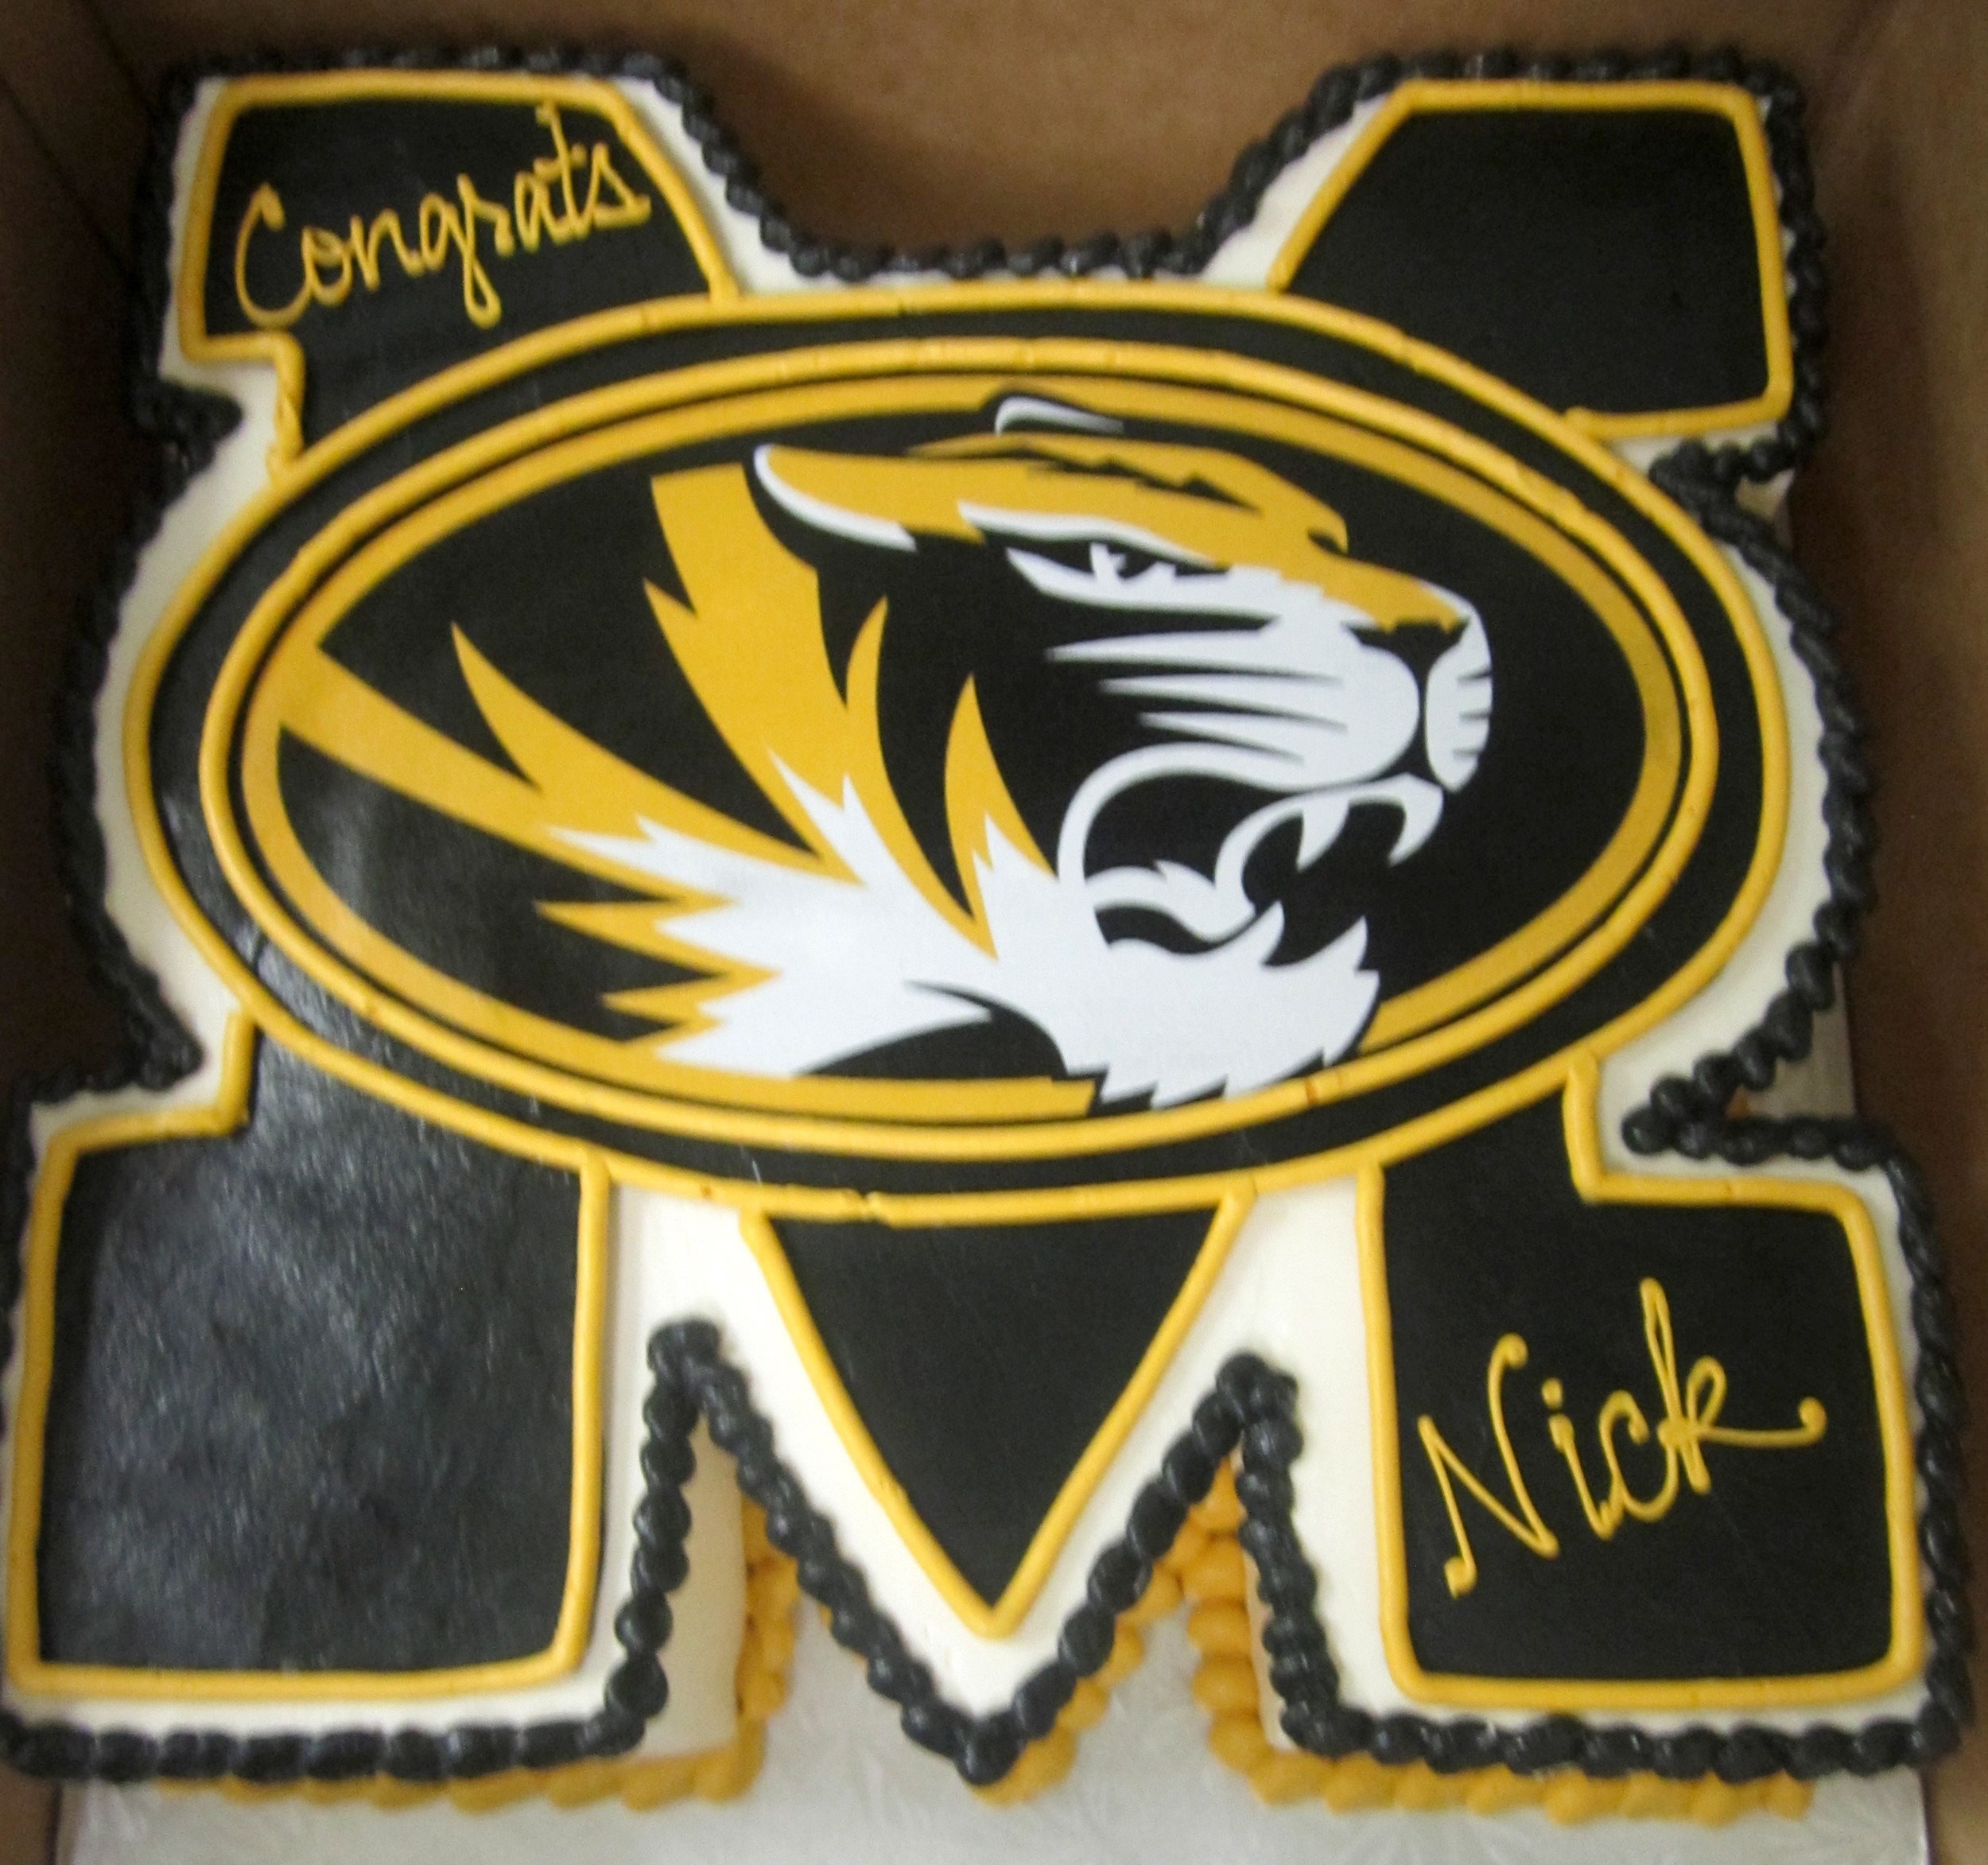 mizzou M perimeter carved cake with tiger in oval - Copy.jpg